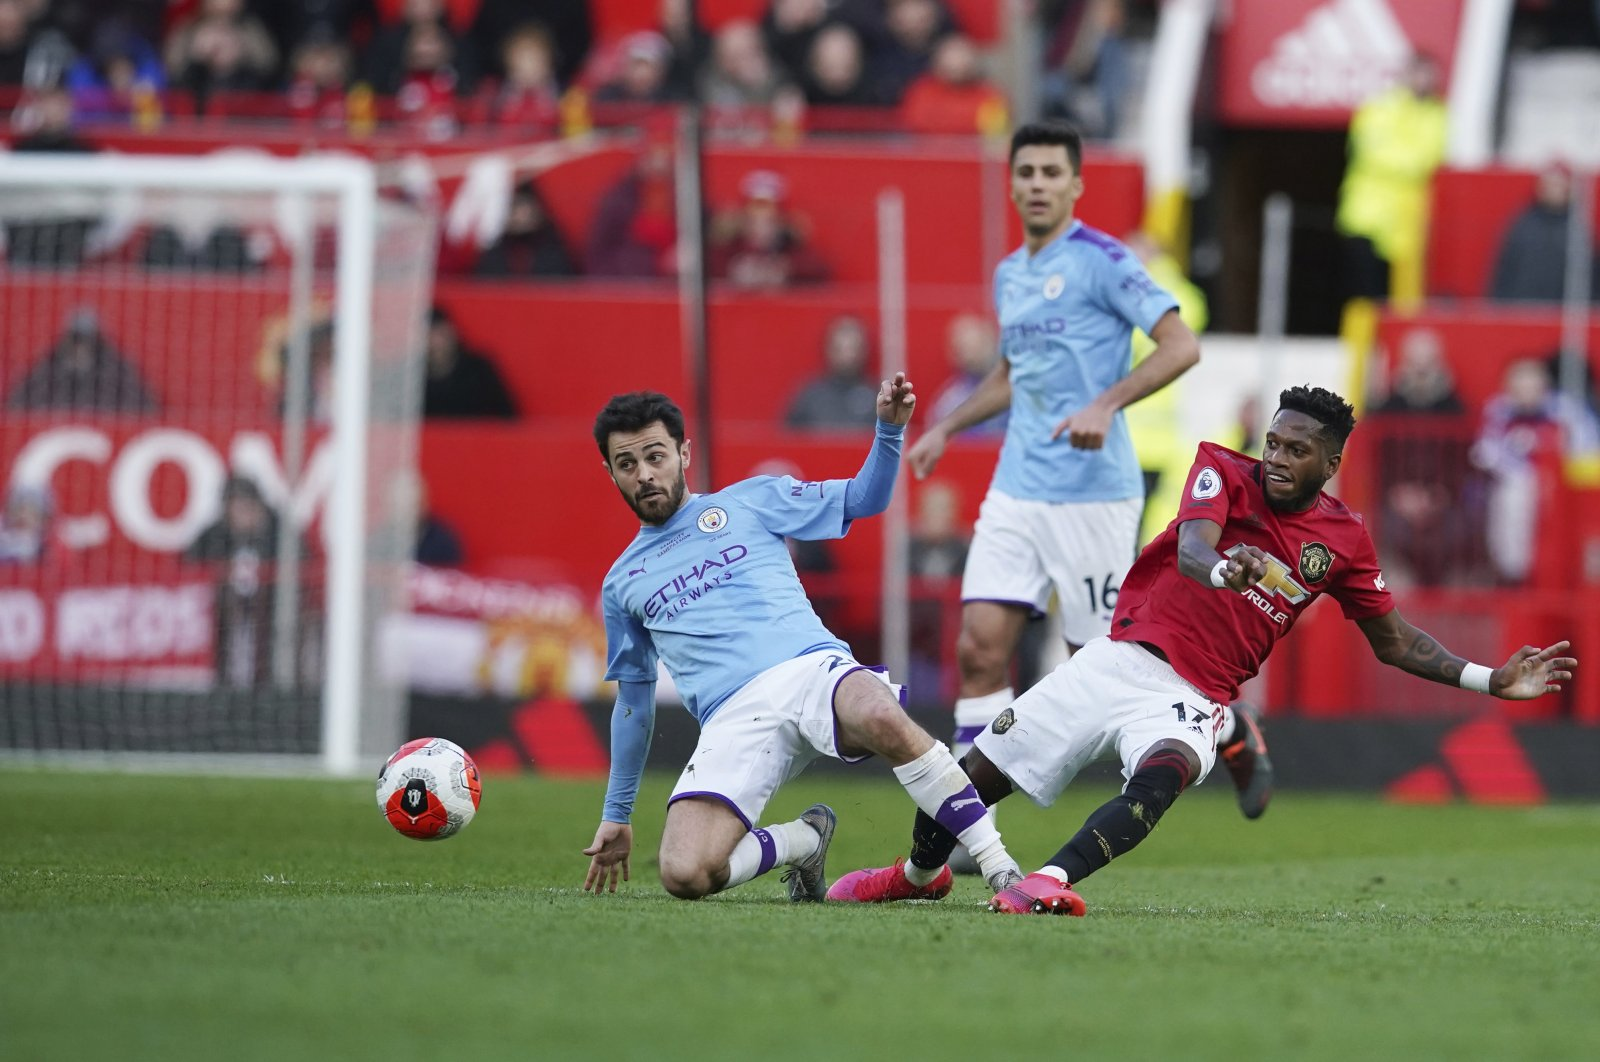 Manchester City's Bernardo Silva (L) and Manchester United's Fred in action during a Premier League match at Old Trafford stadium in Manchester, England, March 8, 2020. (AP Photo)